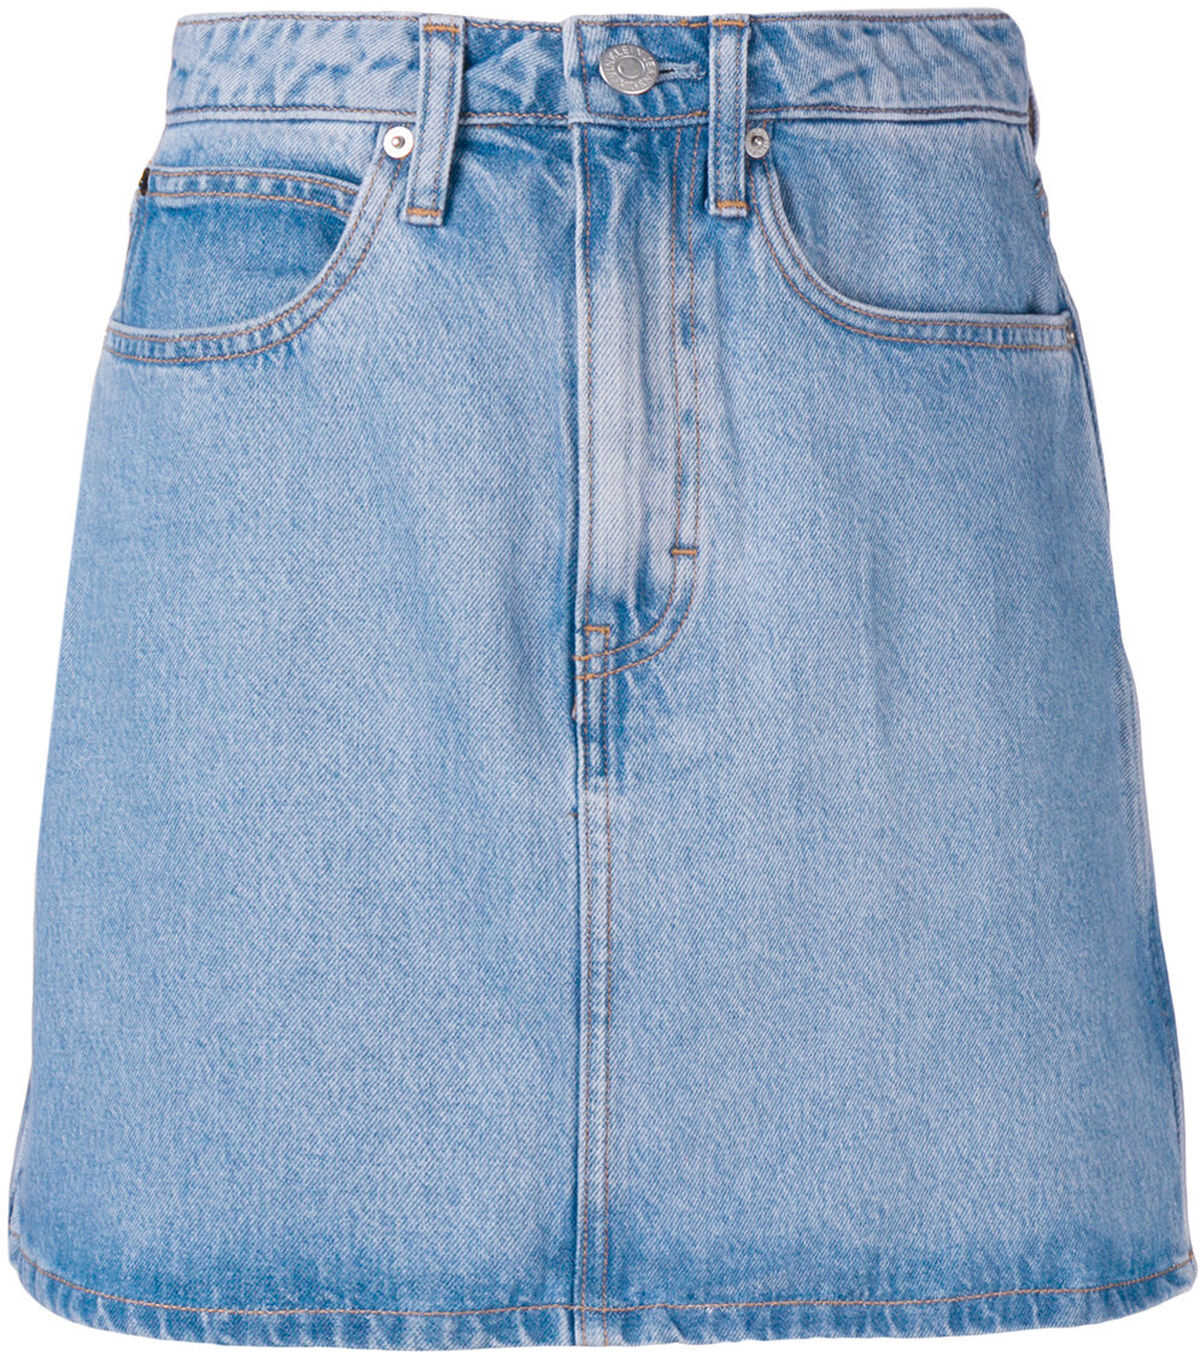 Calvin Klein Jeans Denim Mini Skirt LIGHT STONE